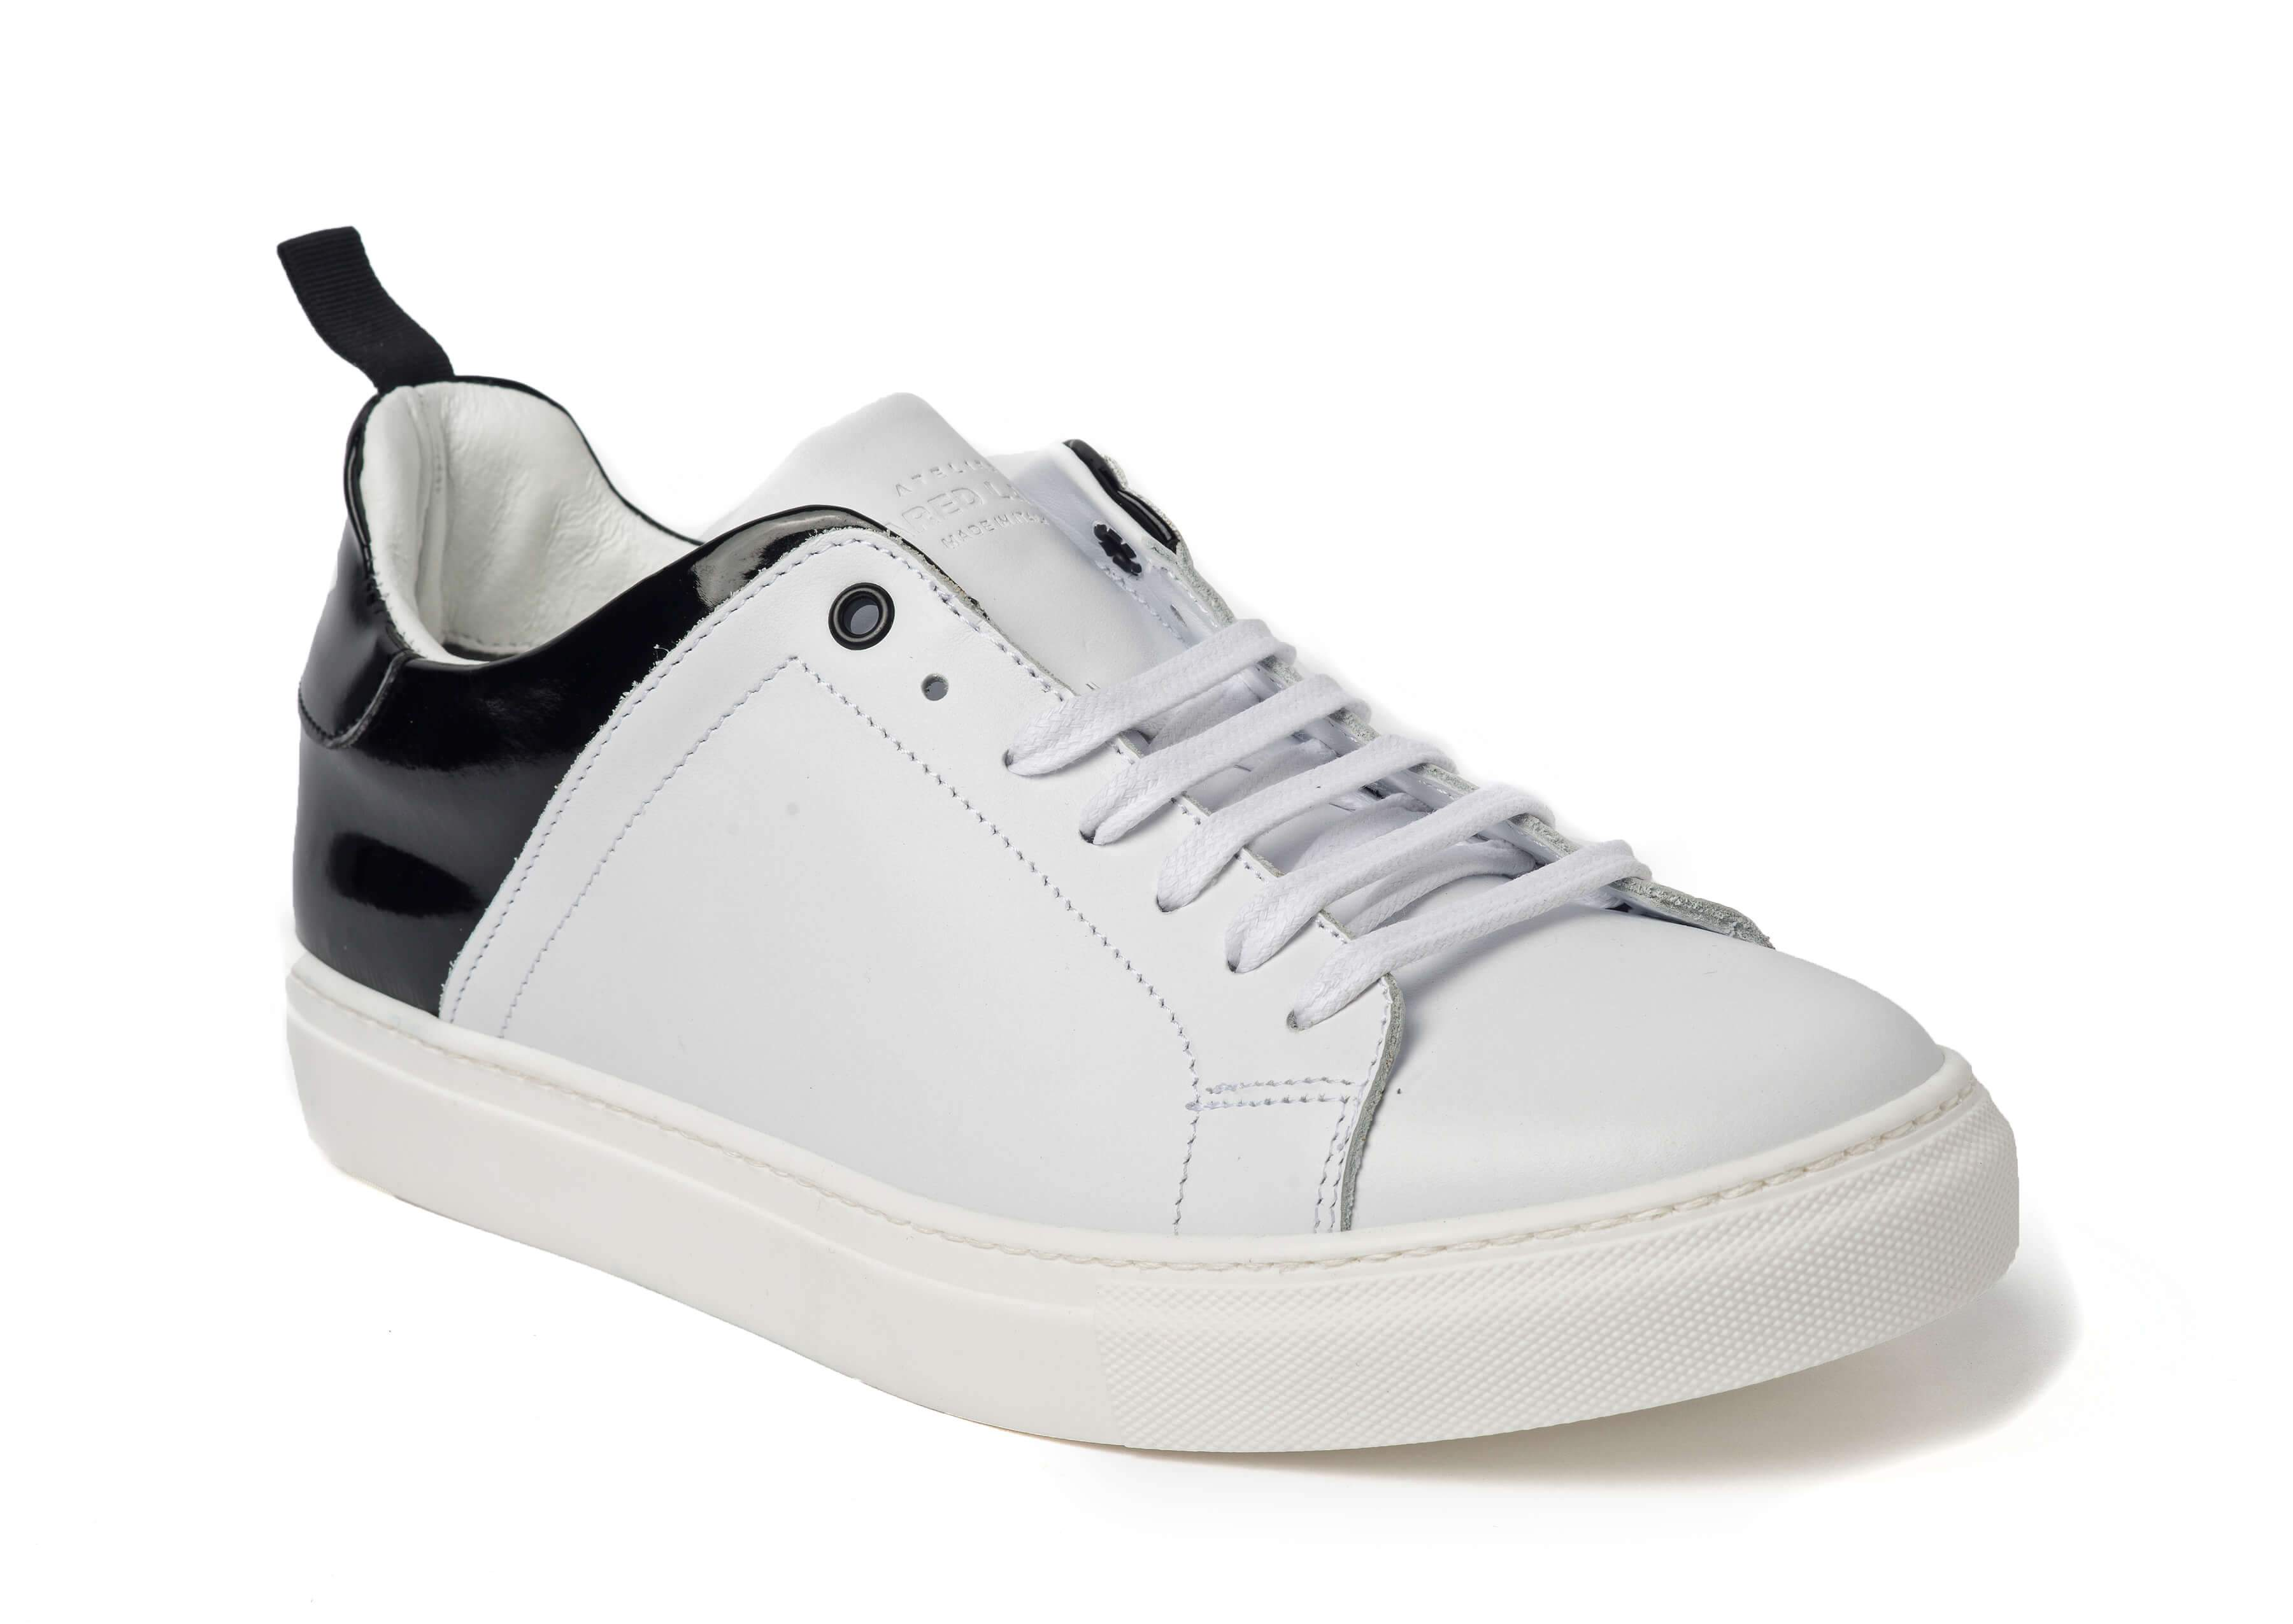 White Black Sneakers for Men - Main 3838-WHB - Jared Lang